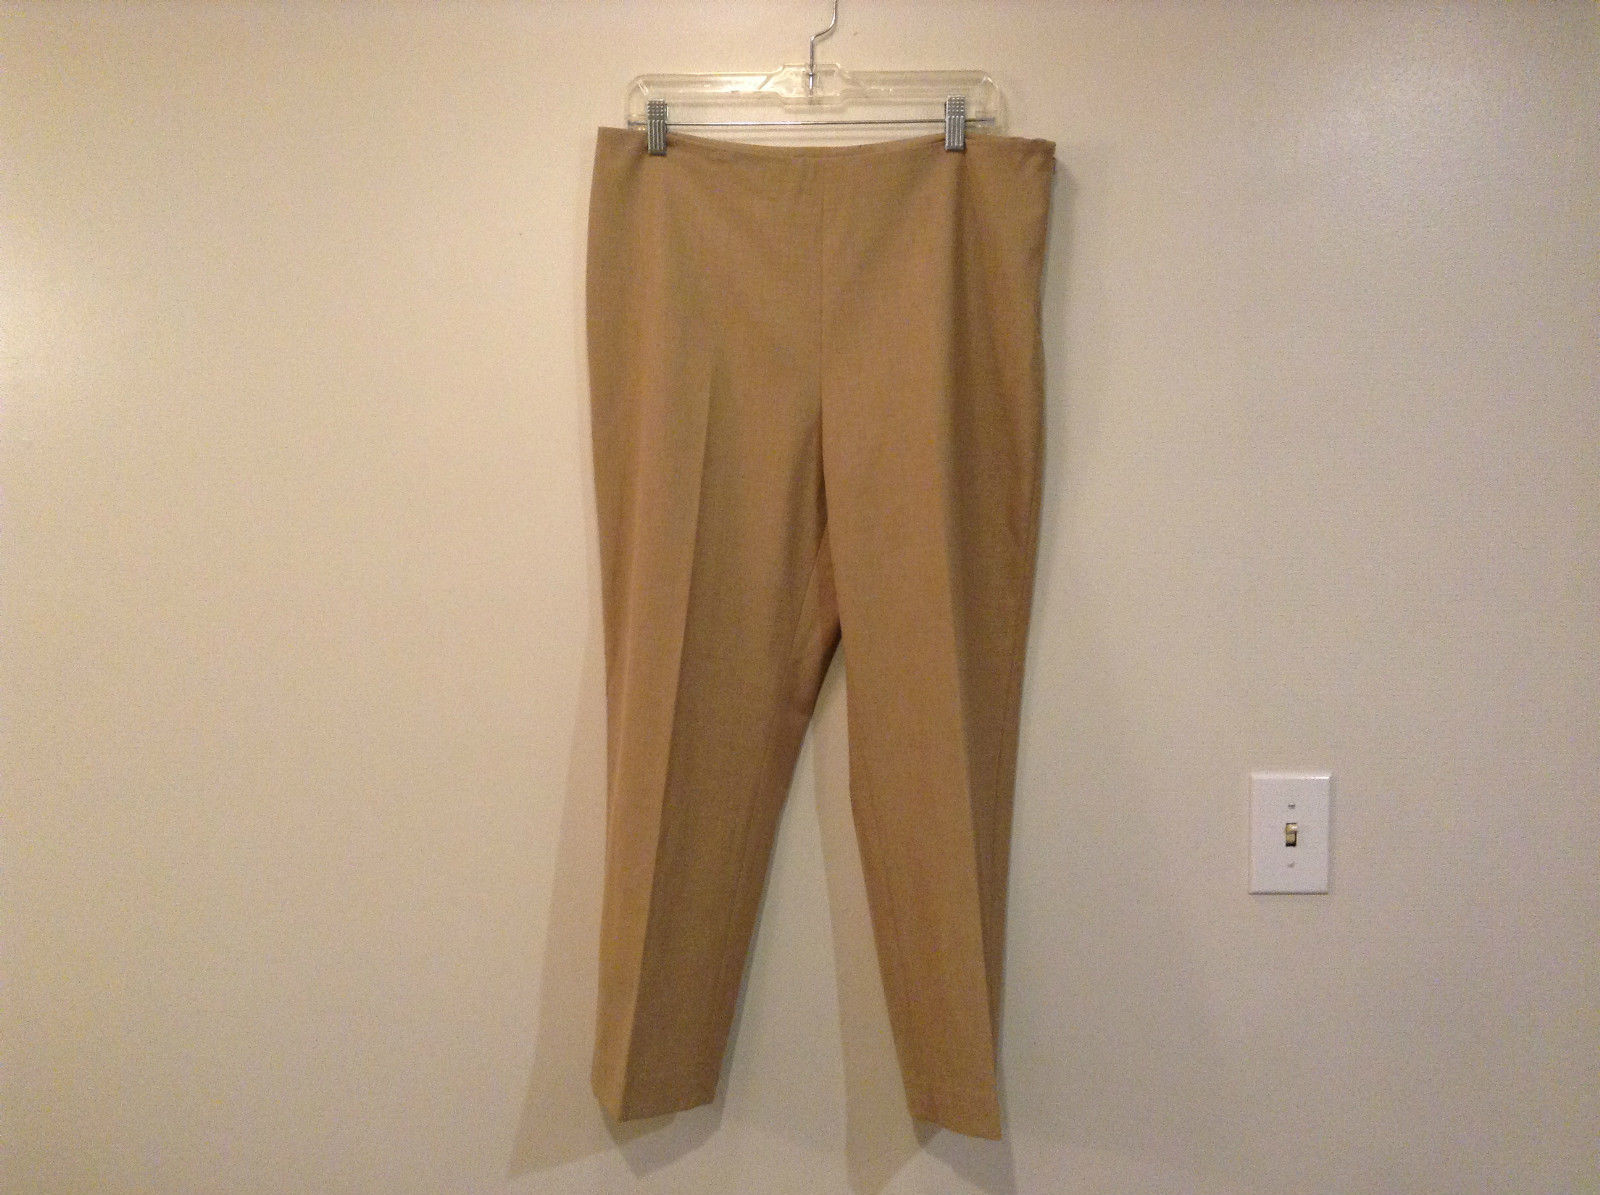 Talbots Petite Classic Tan Dress Pants Side Zipper Closure No Pockets Size 14P